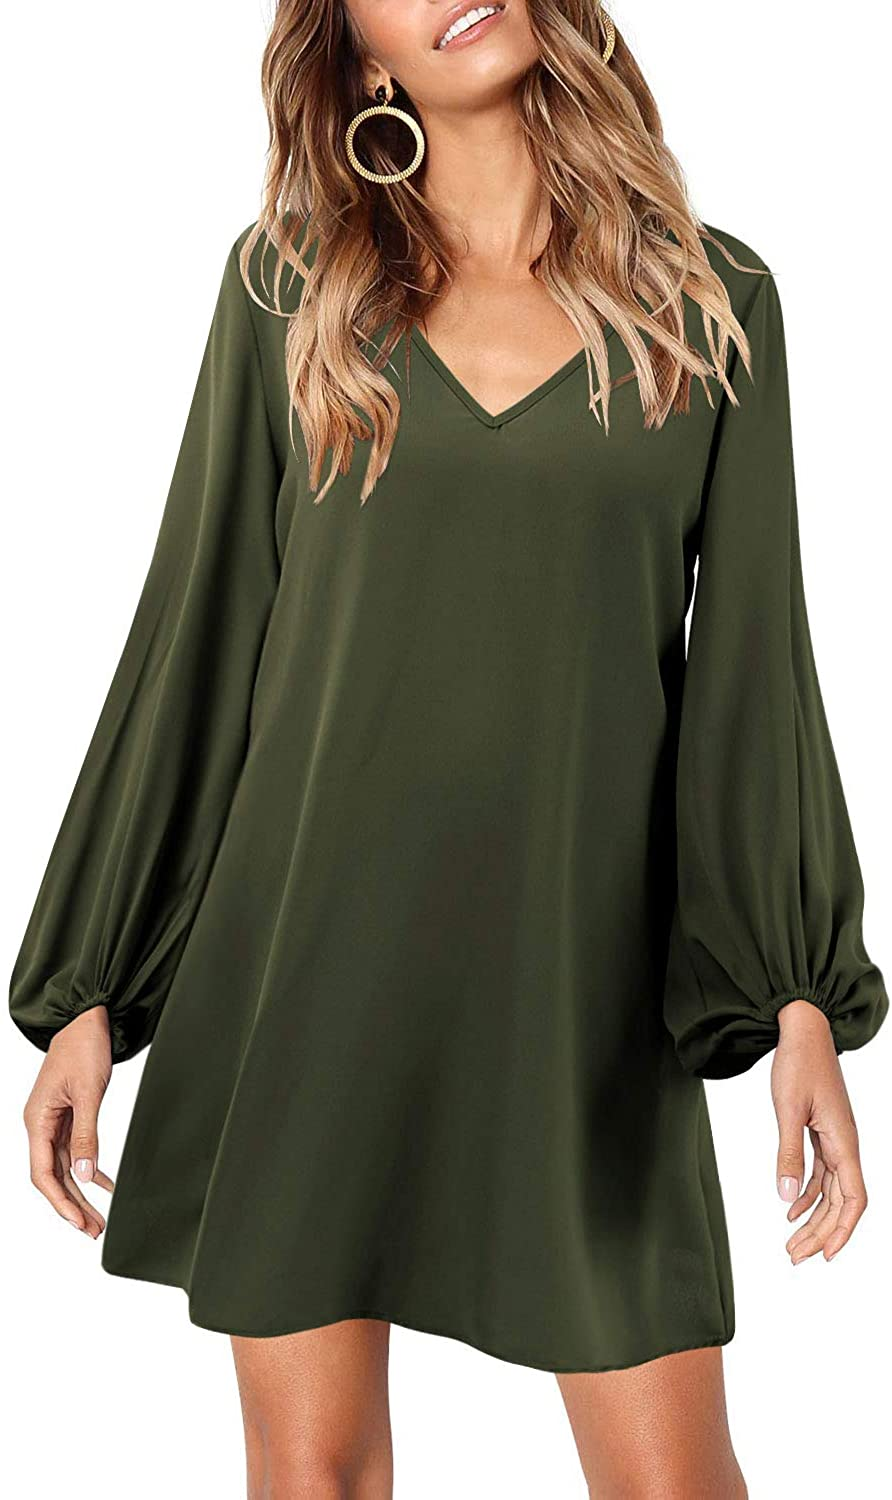 Wine chiffon Evening Cocktail V neck Lined Bell Long Sleeves Shift Tunic Dress